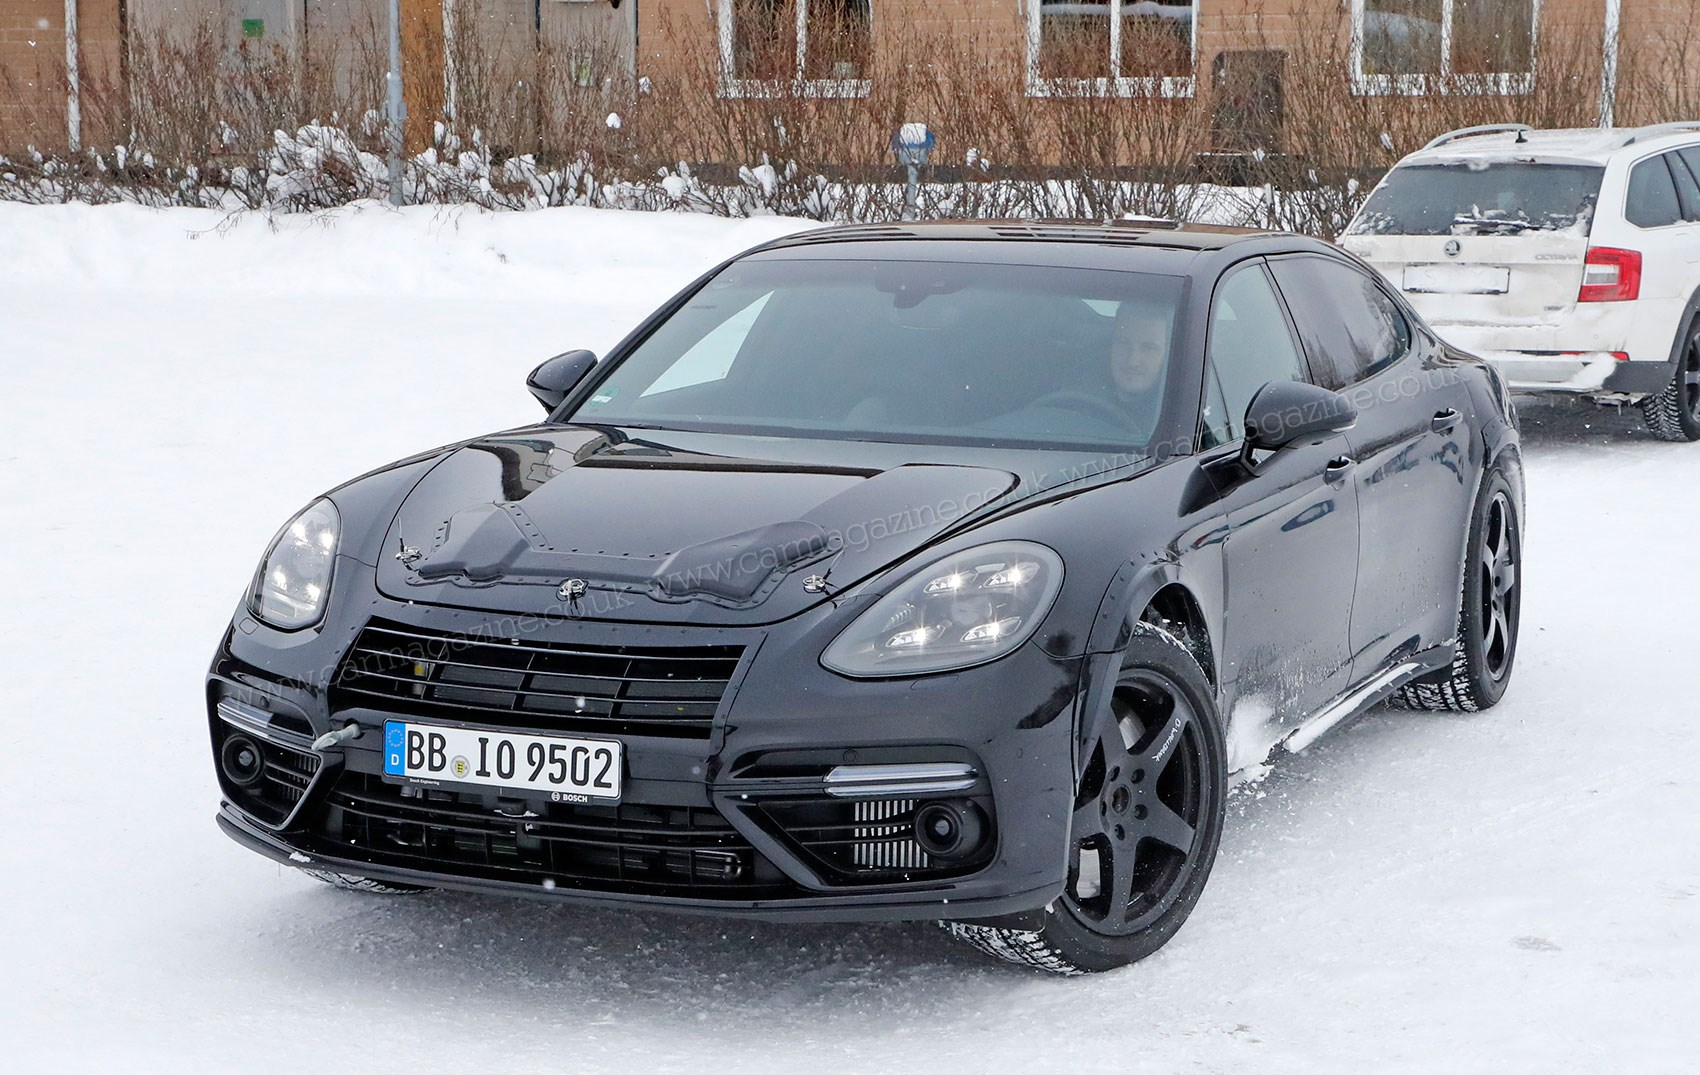 Porsche Panamera Turbo prices announced at INR 1.93 crore in India